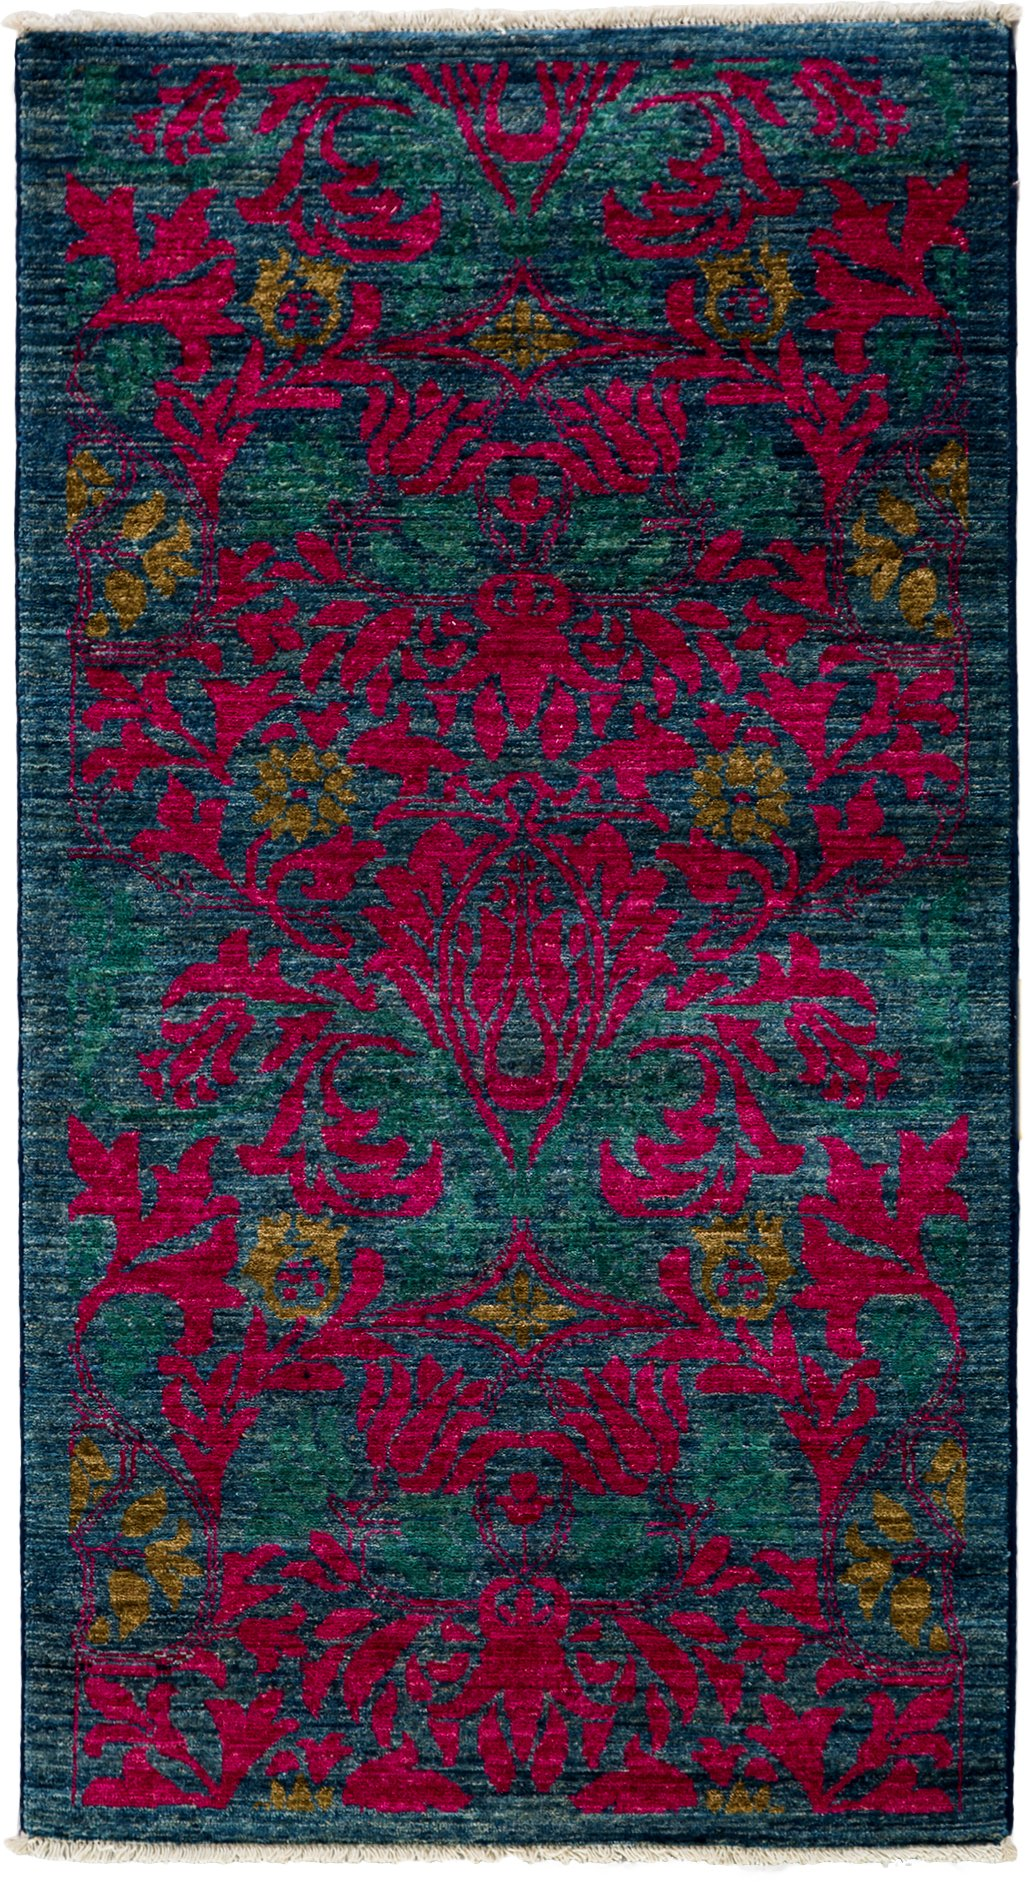 "Arts & Crafts, Area Rug - 2' 10"" x 5' 3"""